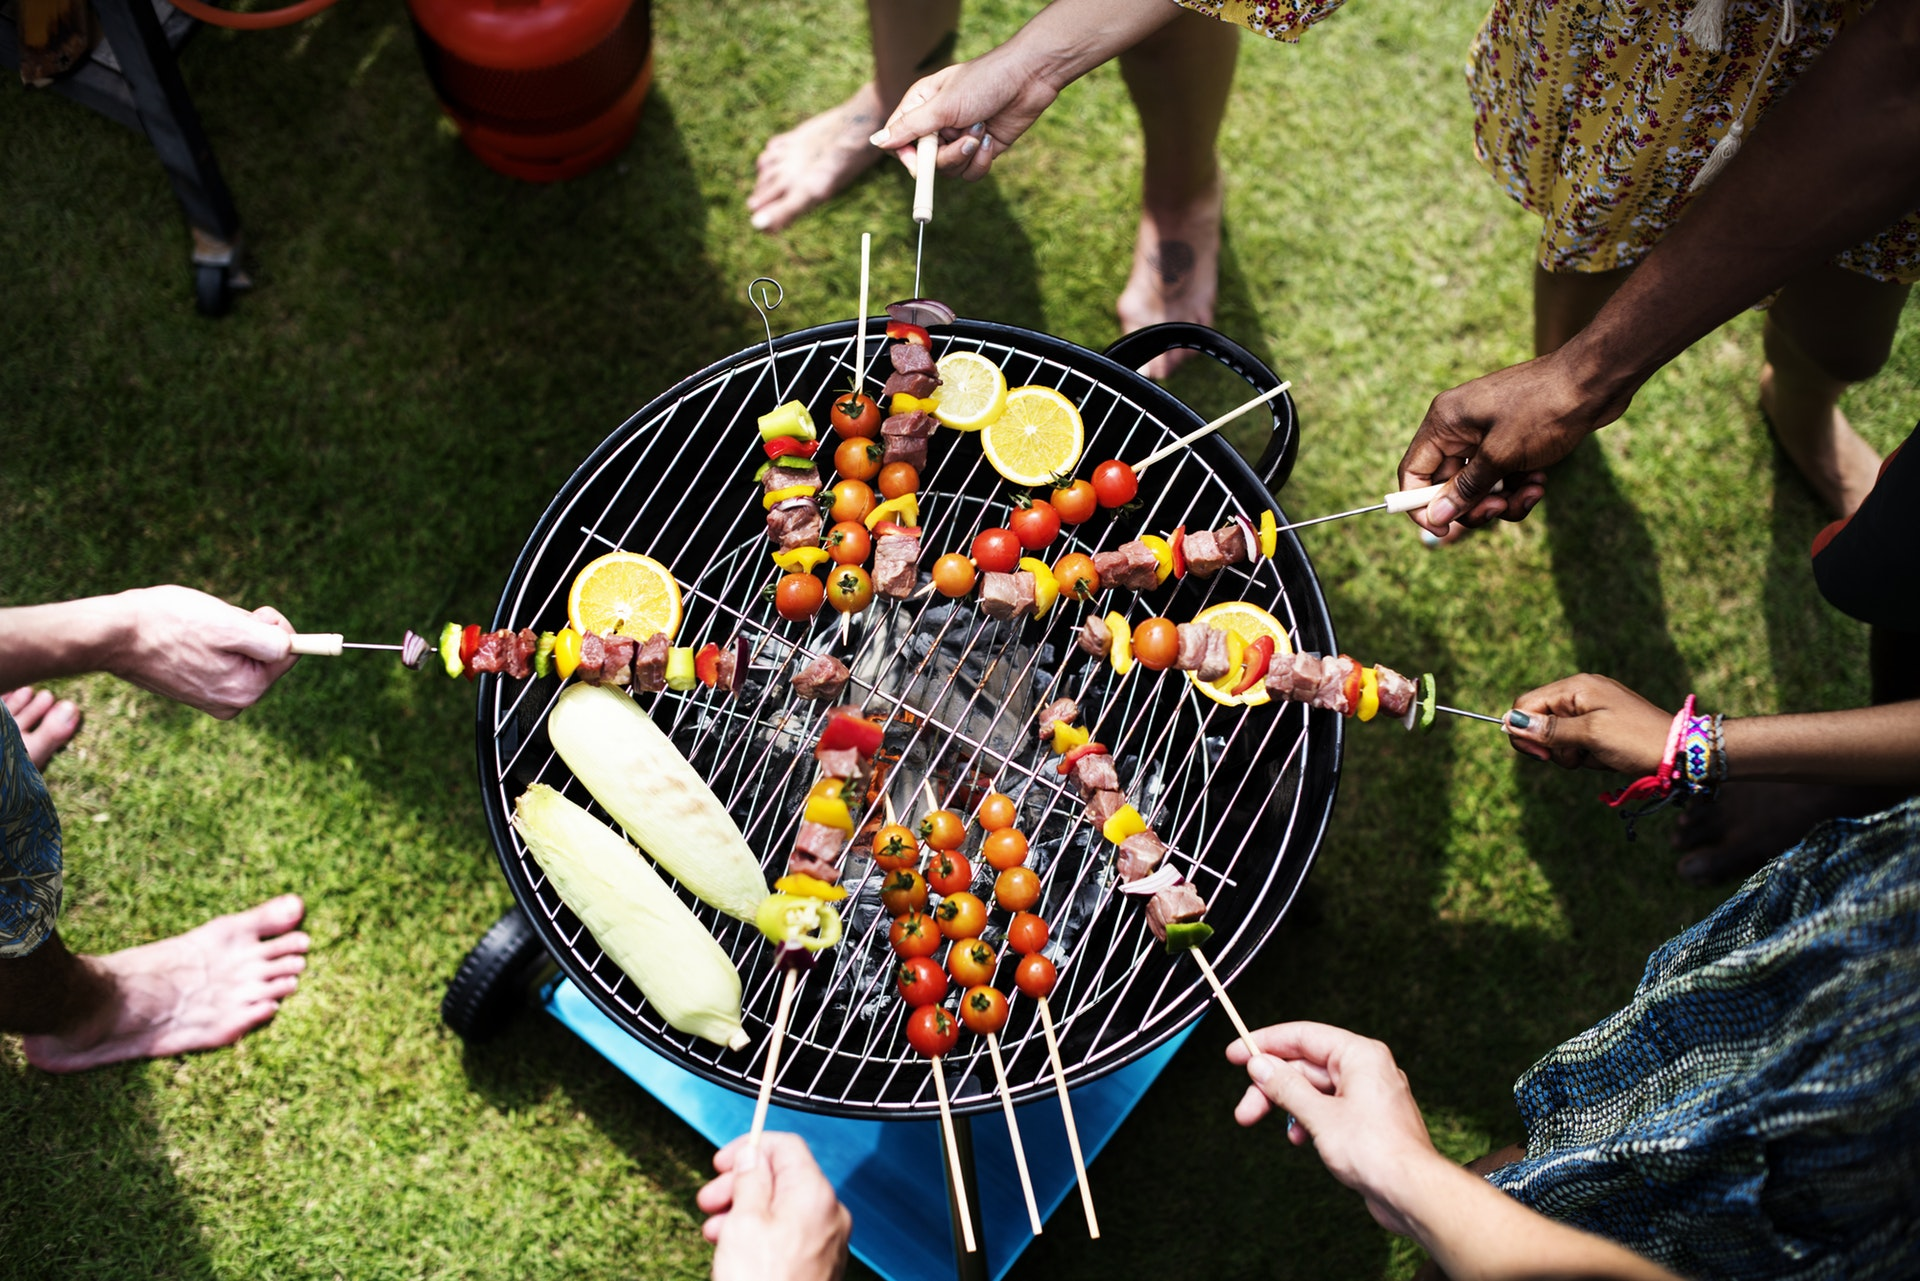 8 Things to Consider Before Throwing an Outdoor BBQ Party